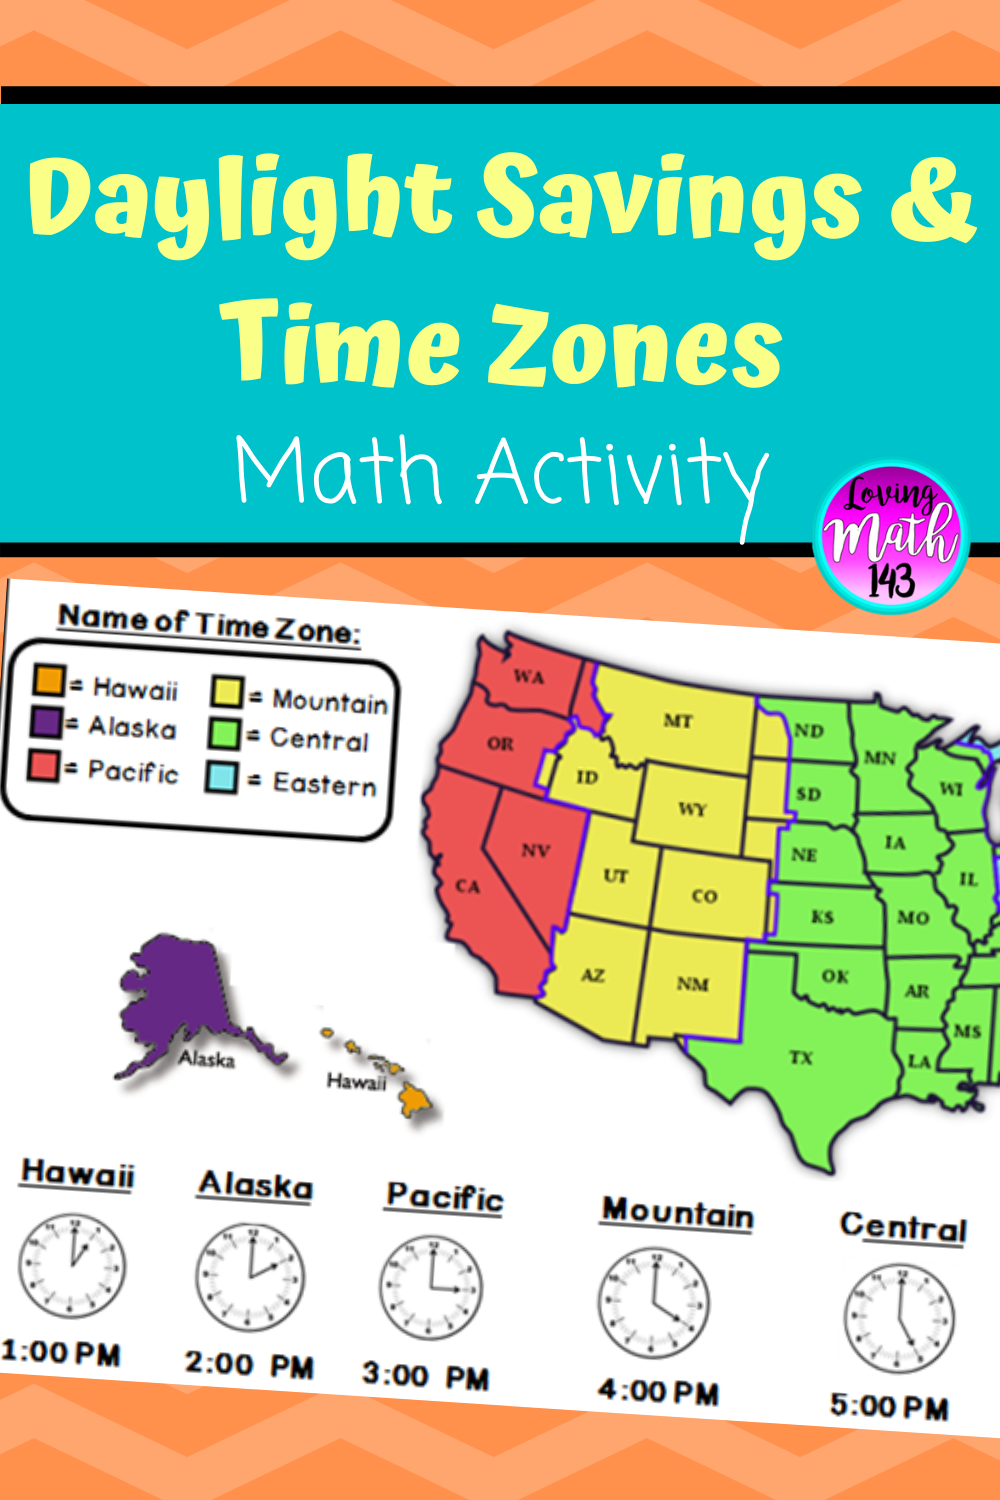 Math Activity for 3rd-6th Grade   Maths activities middle school [ 1500 x 1000 Pixel ]